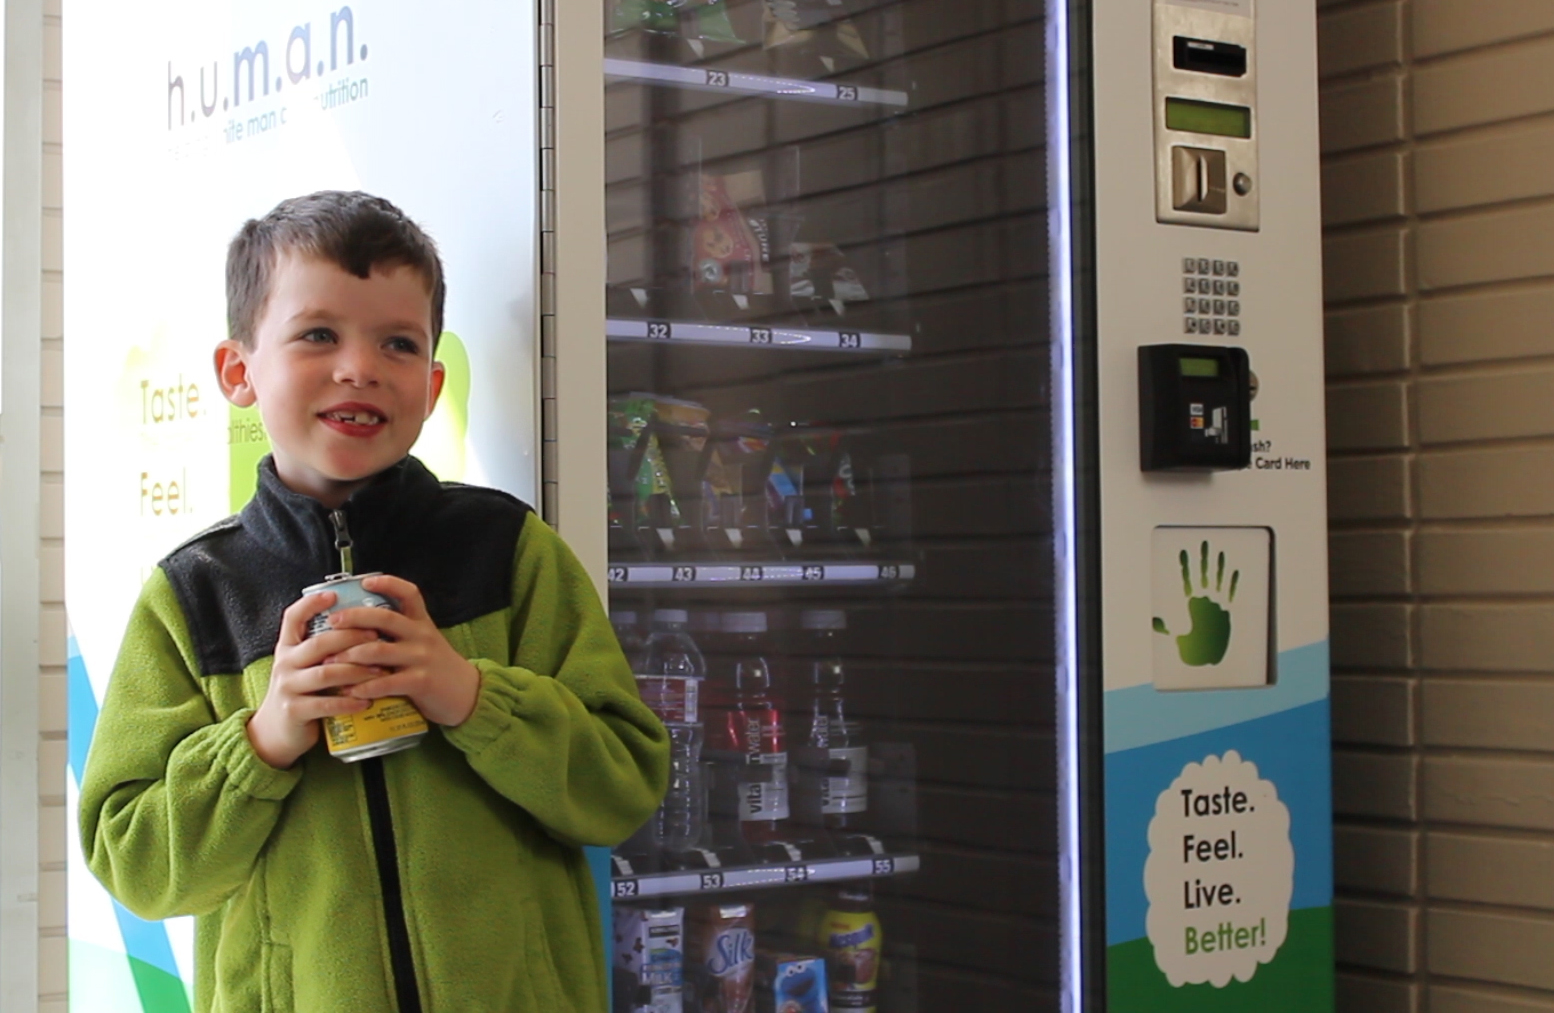 Human Healthy Vending Aligns With Usda To Provide Smart